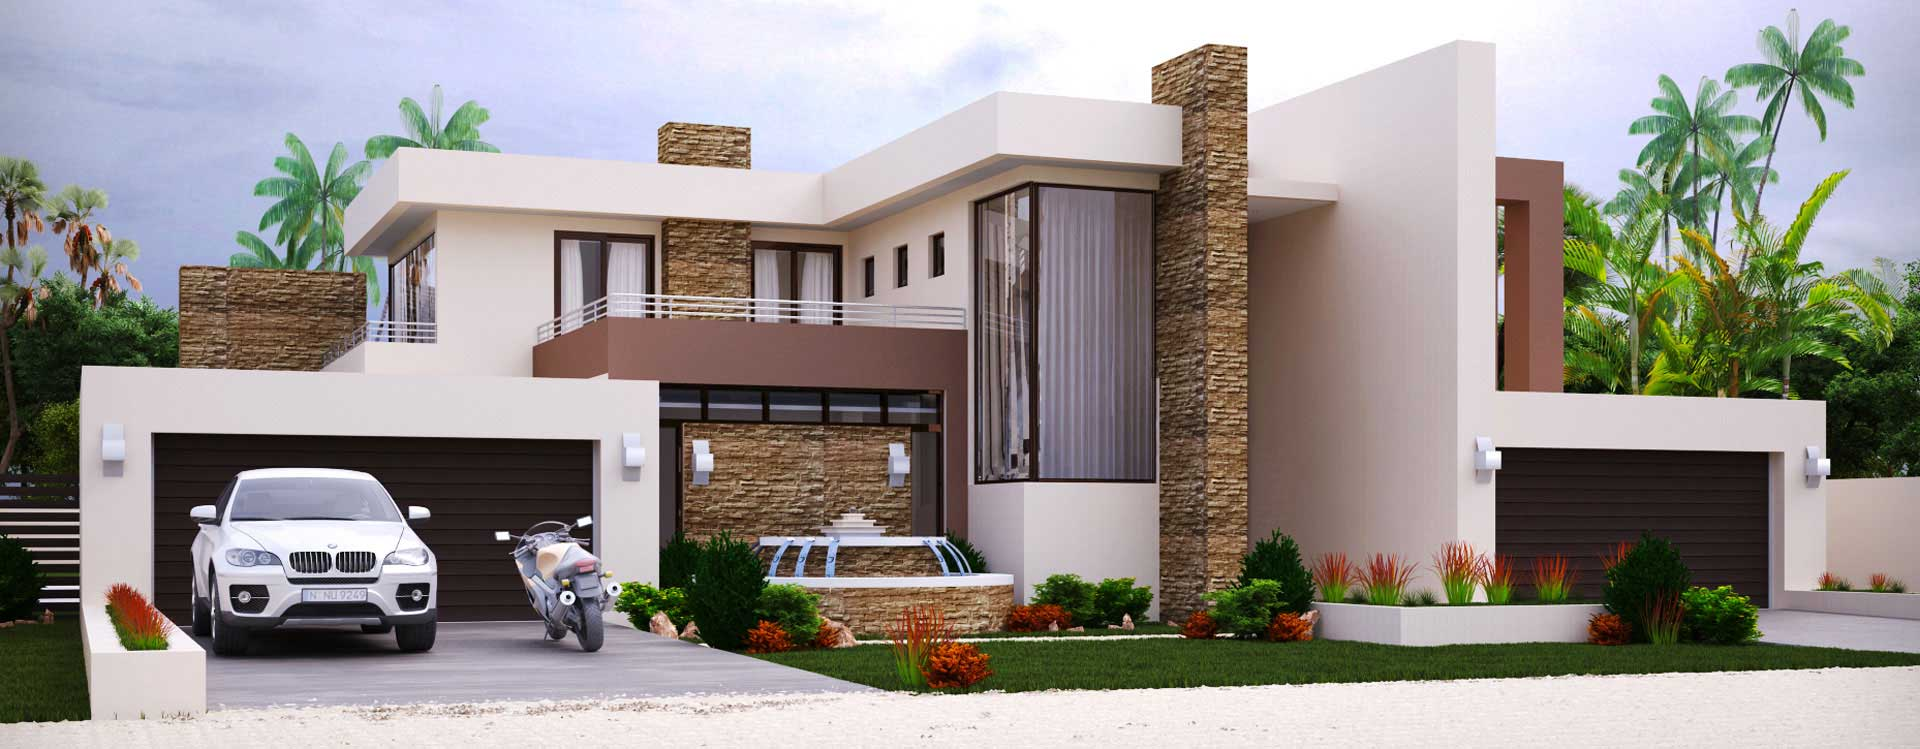 Genial Modern Style House Plan, 4 Bedroom, Double Storey Floor Plans, Home Design,